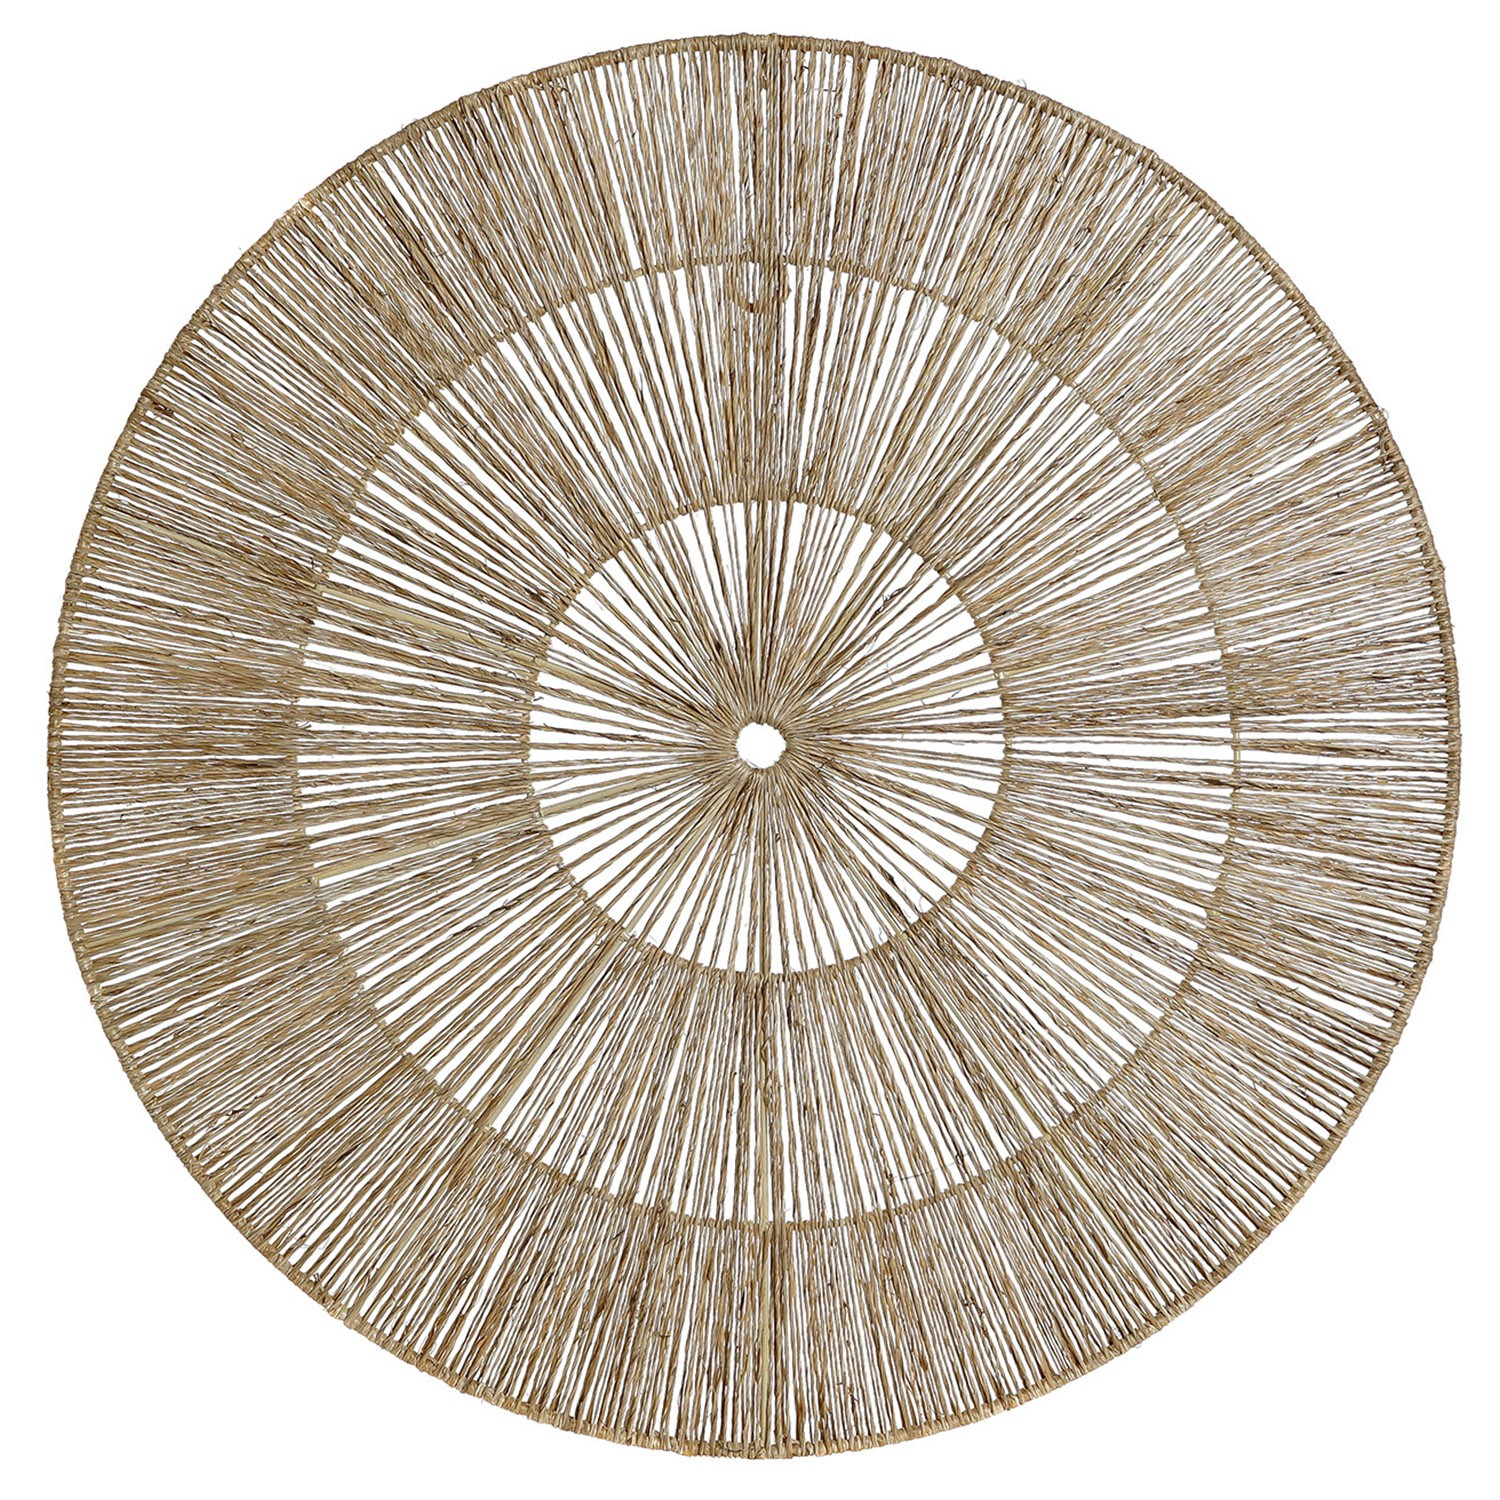 DECORACION PARED SUN YUTE 60CM